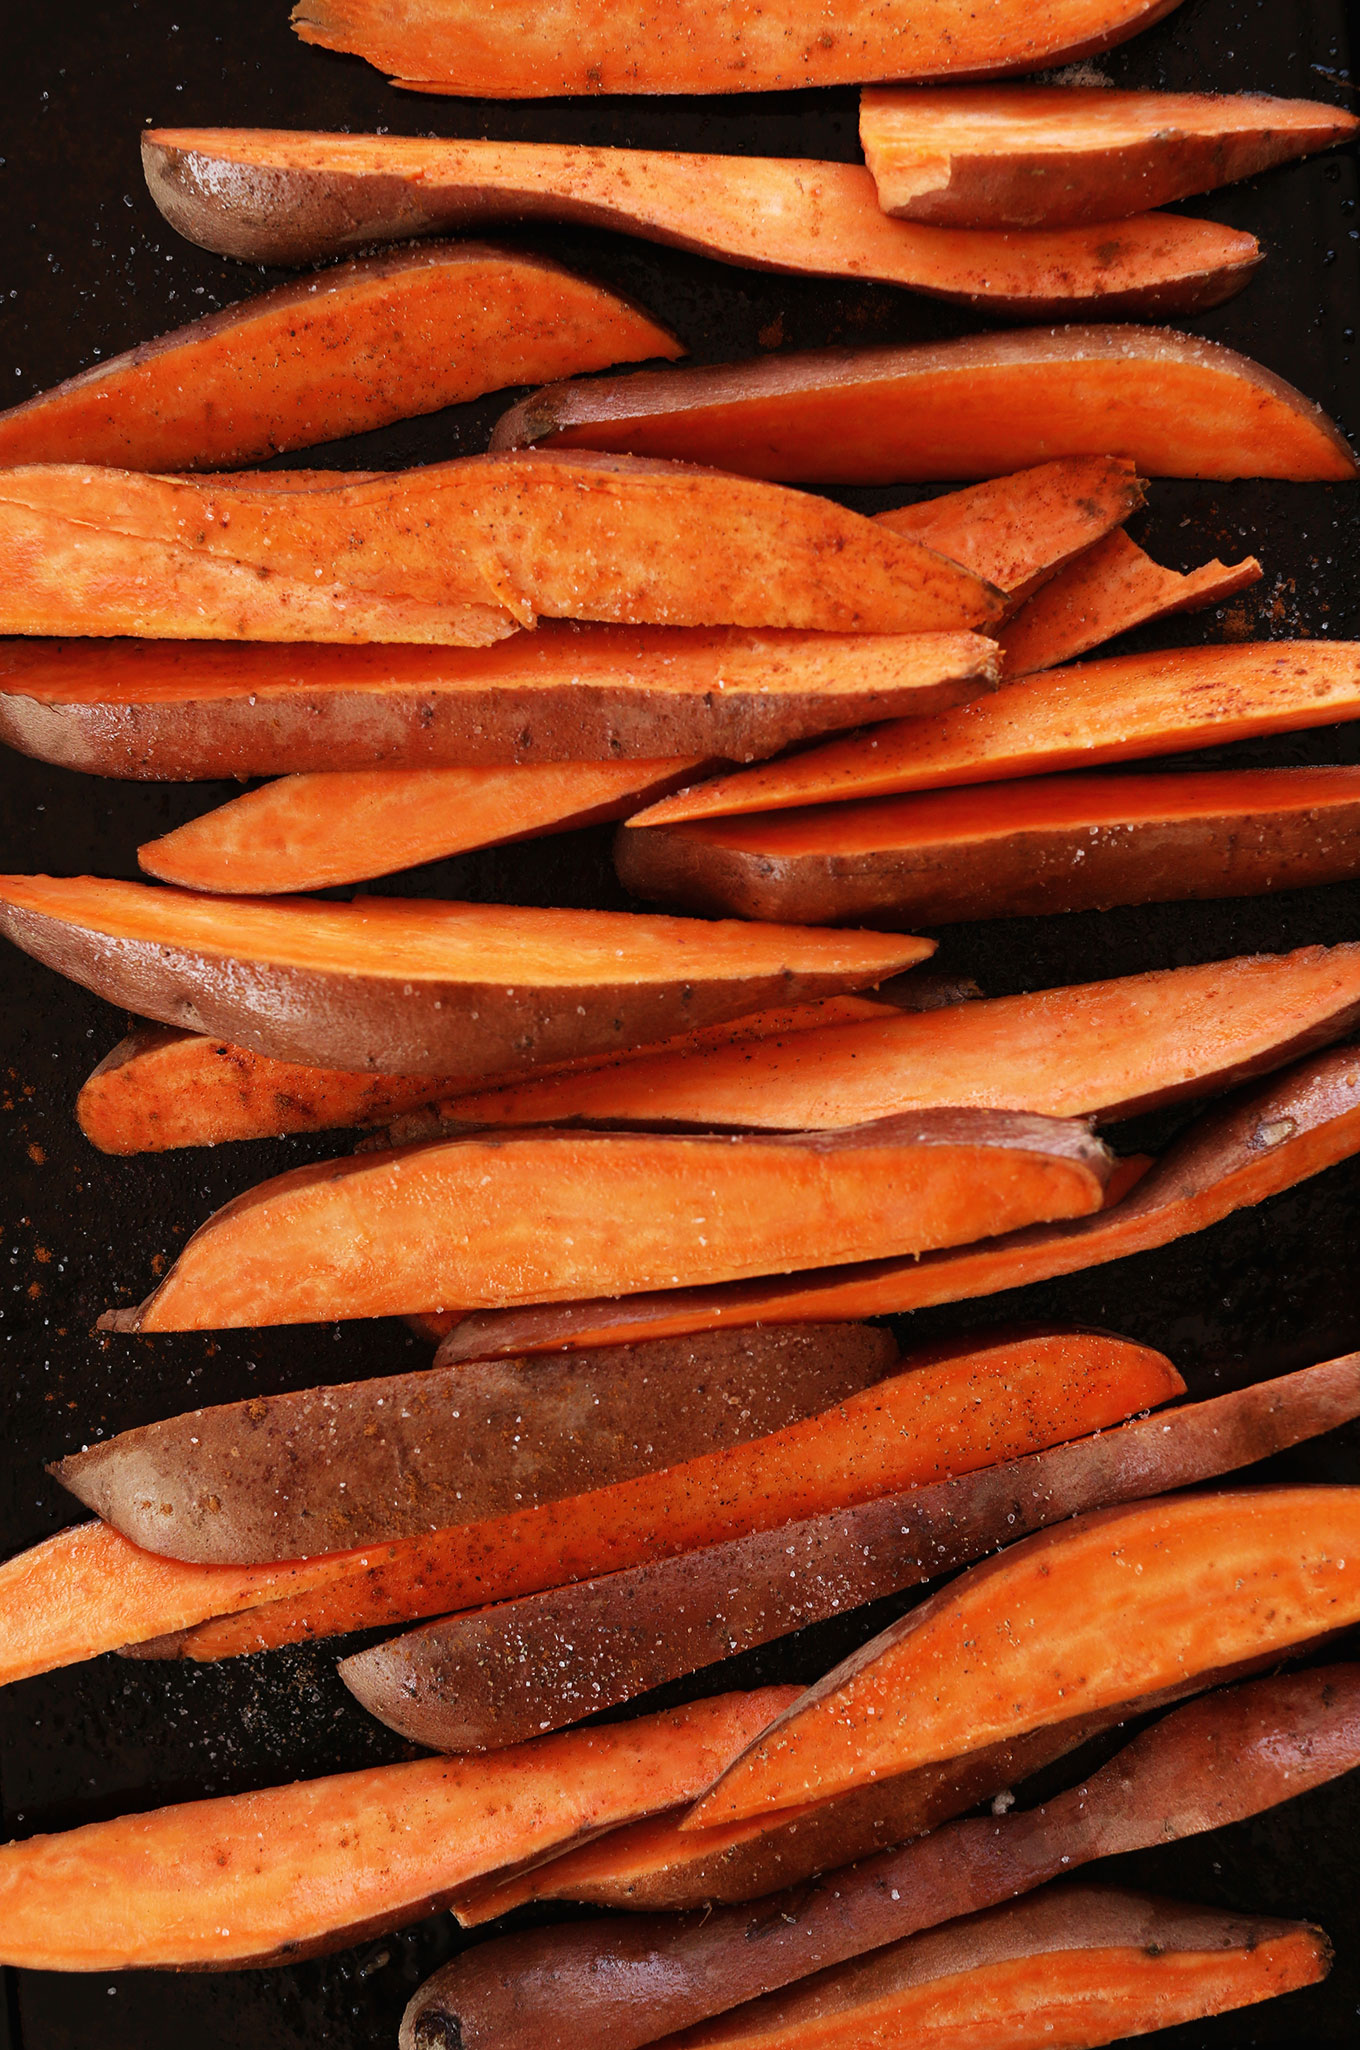 Baking sheet with Sweet Potato Wedges topped with salt and spices